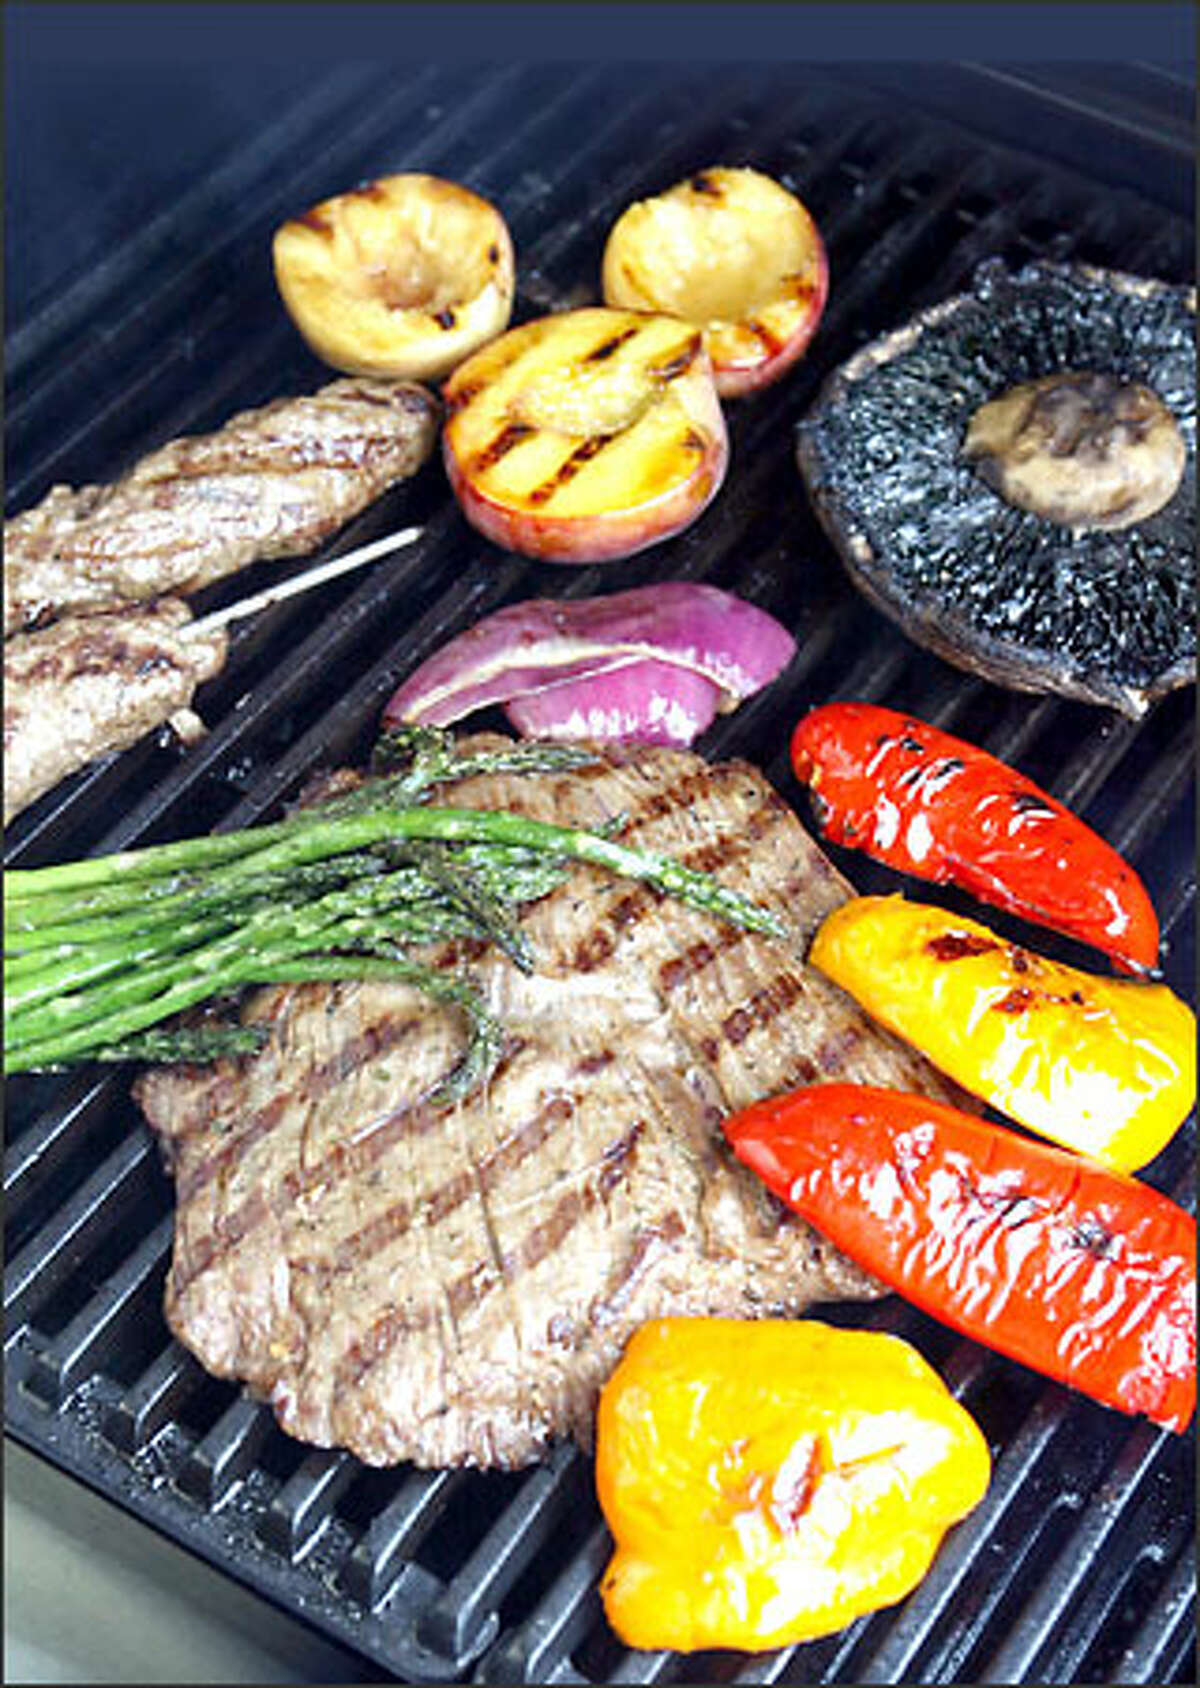 Grilling isn't just for burgers anymore. Here we have flank steak surrounded by peppers, asparagas, lamb kebobs, nectarines, onions and a portabello mushroom.